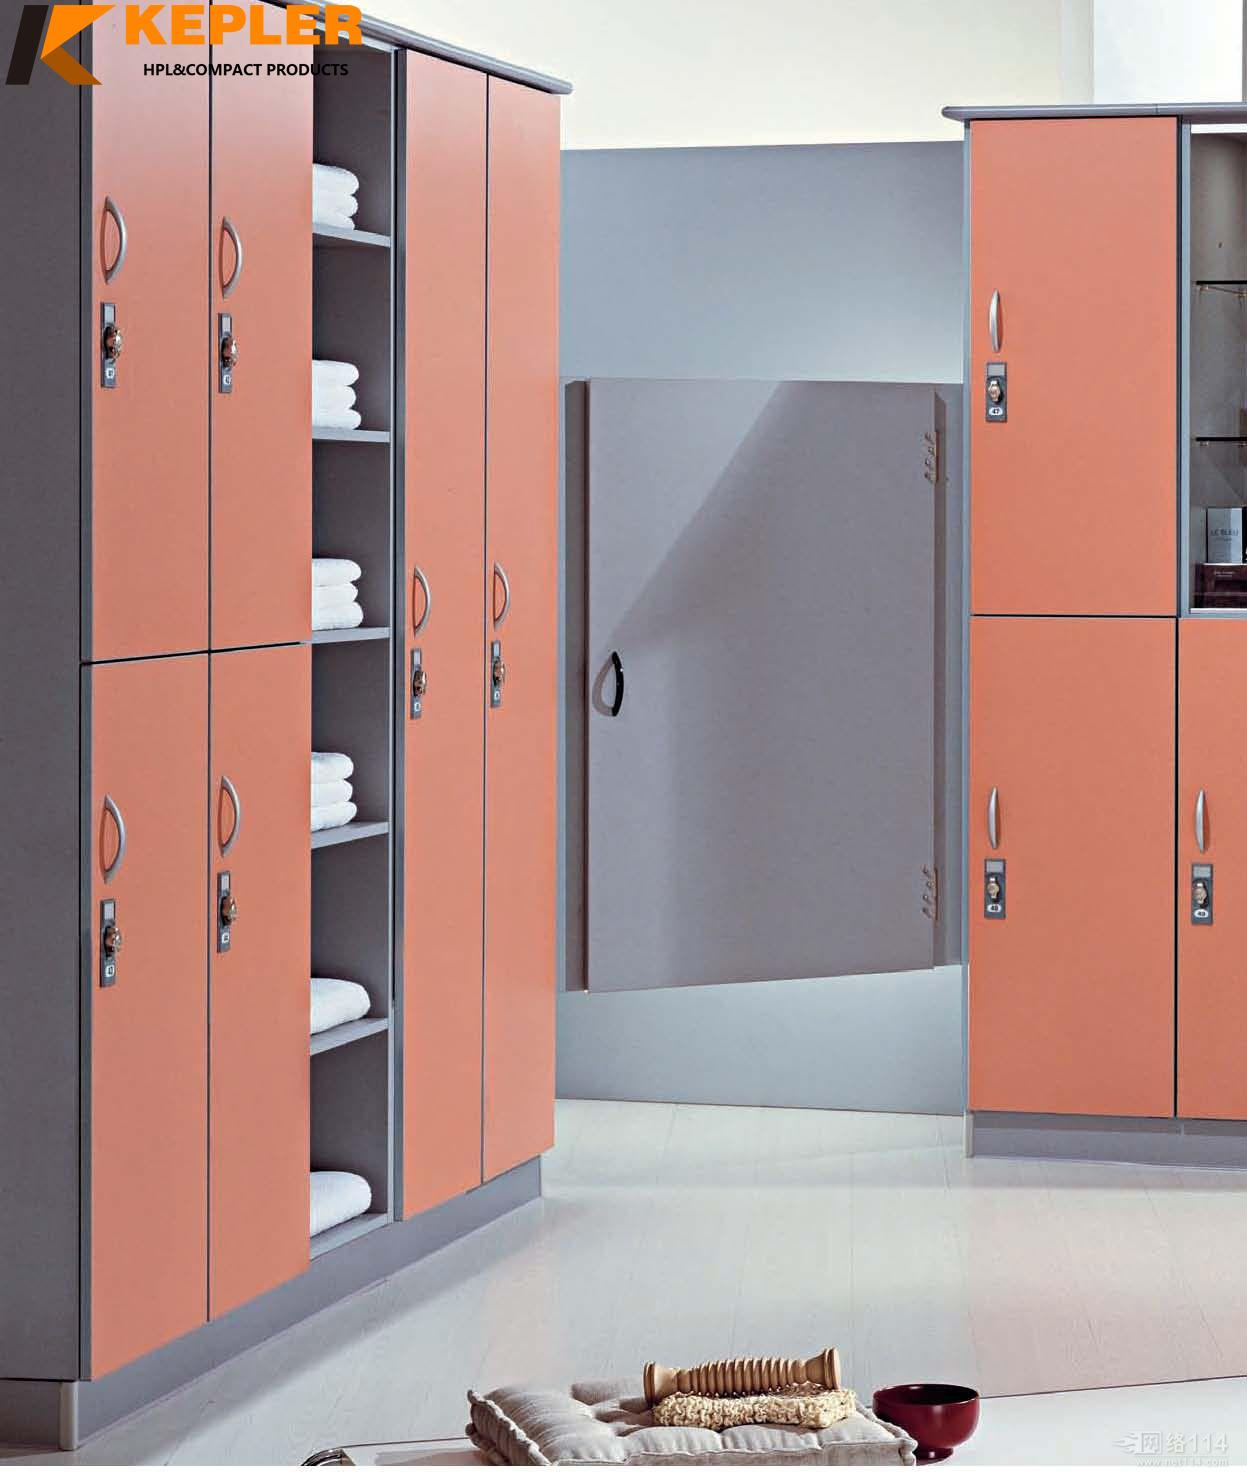 Kepler 12 mm thickness waterproof HPL storage locker cabinet for gym spa changing room with bench